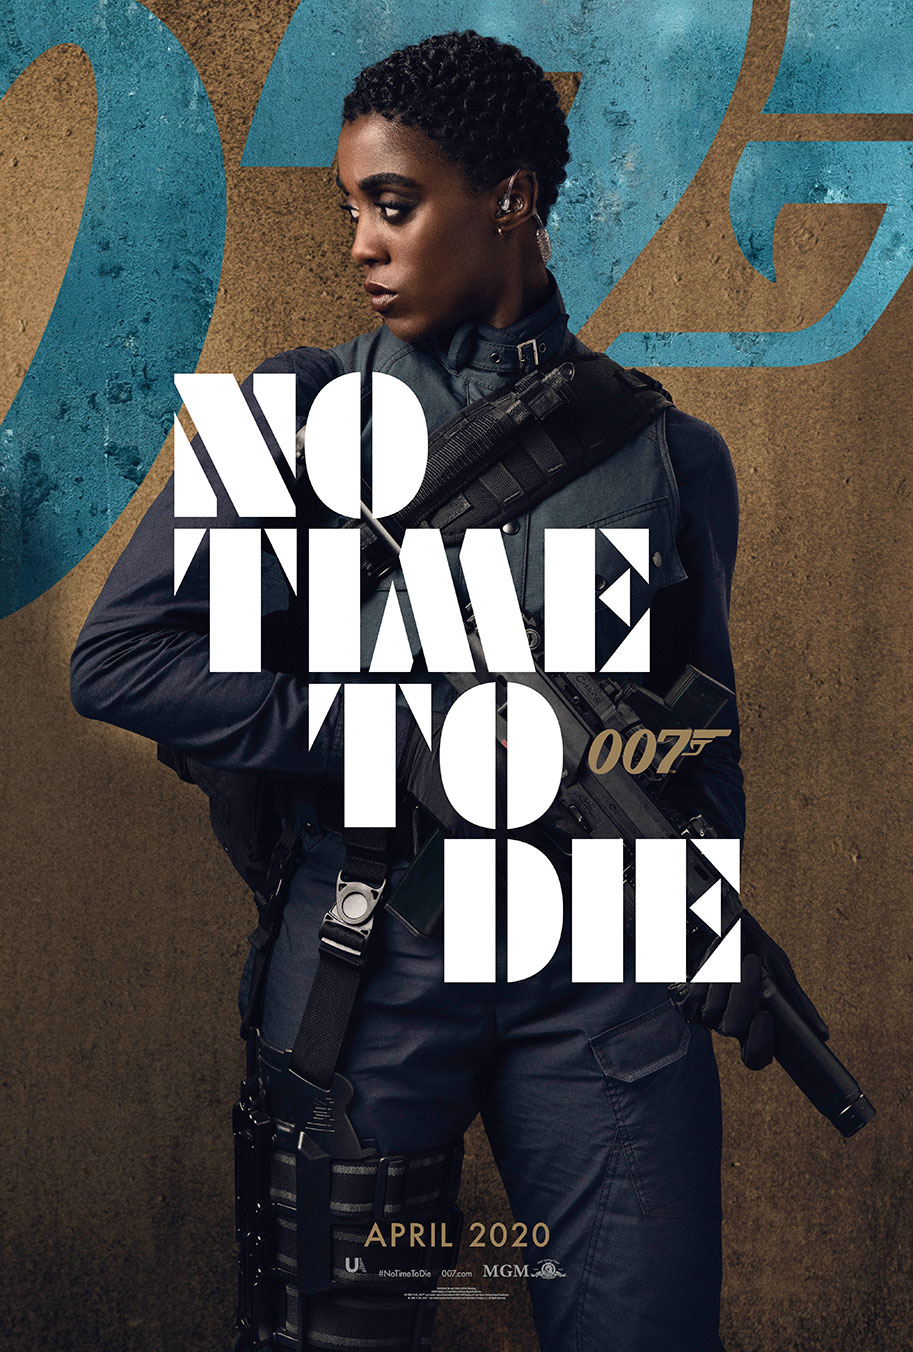 NO TIME TO DIE POSTER (#7 OF 12) - OKAY BHARGAV